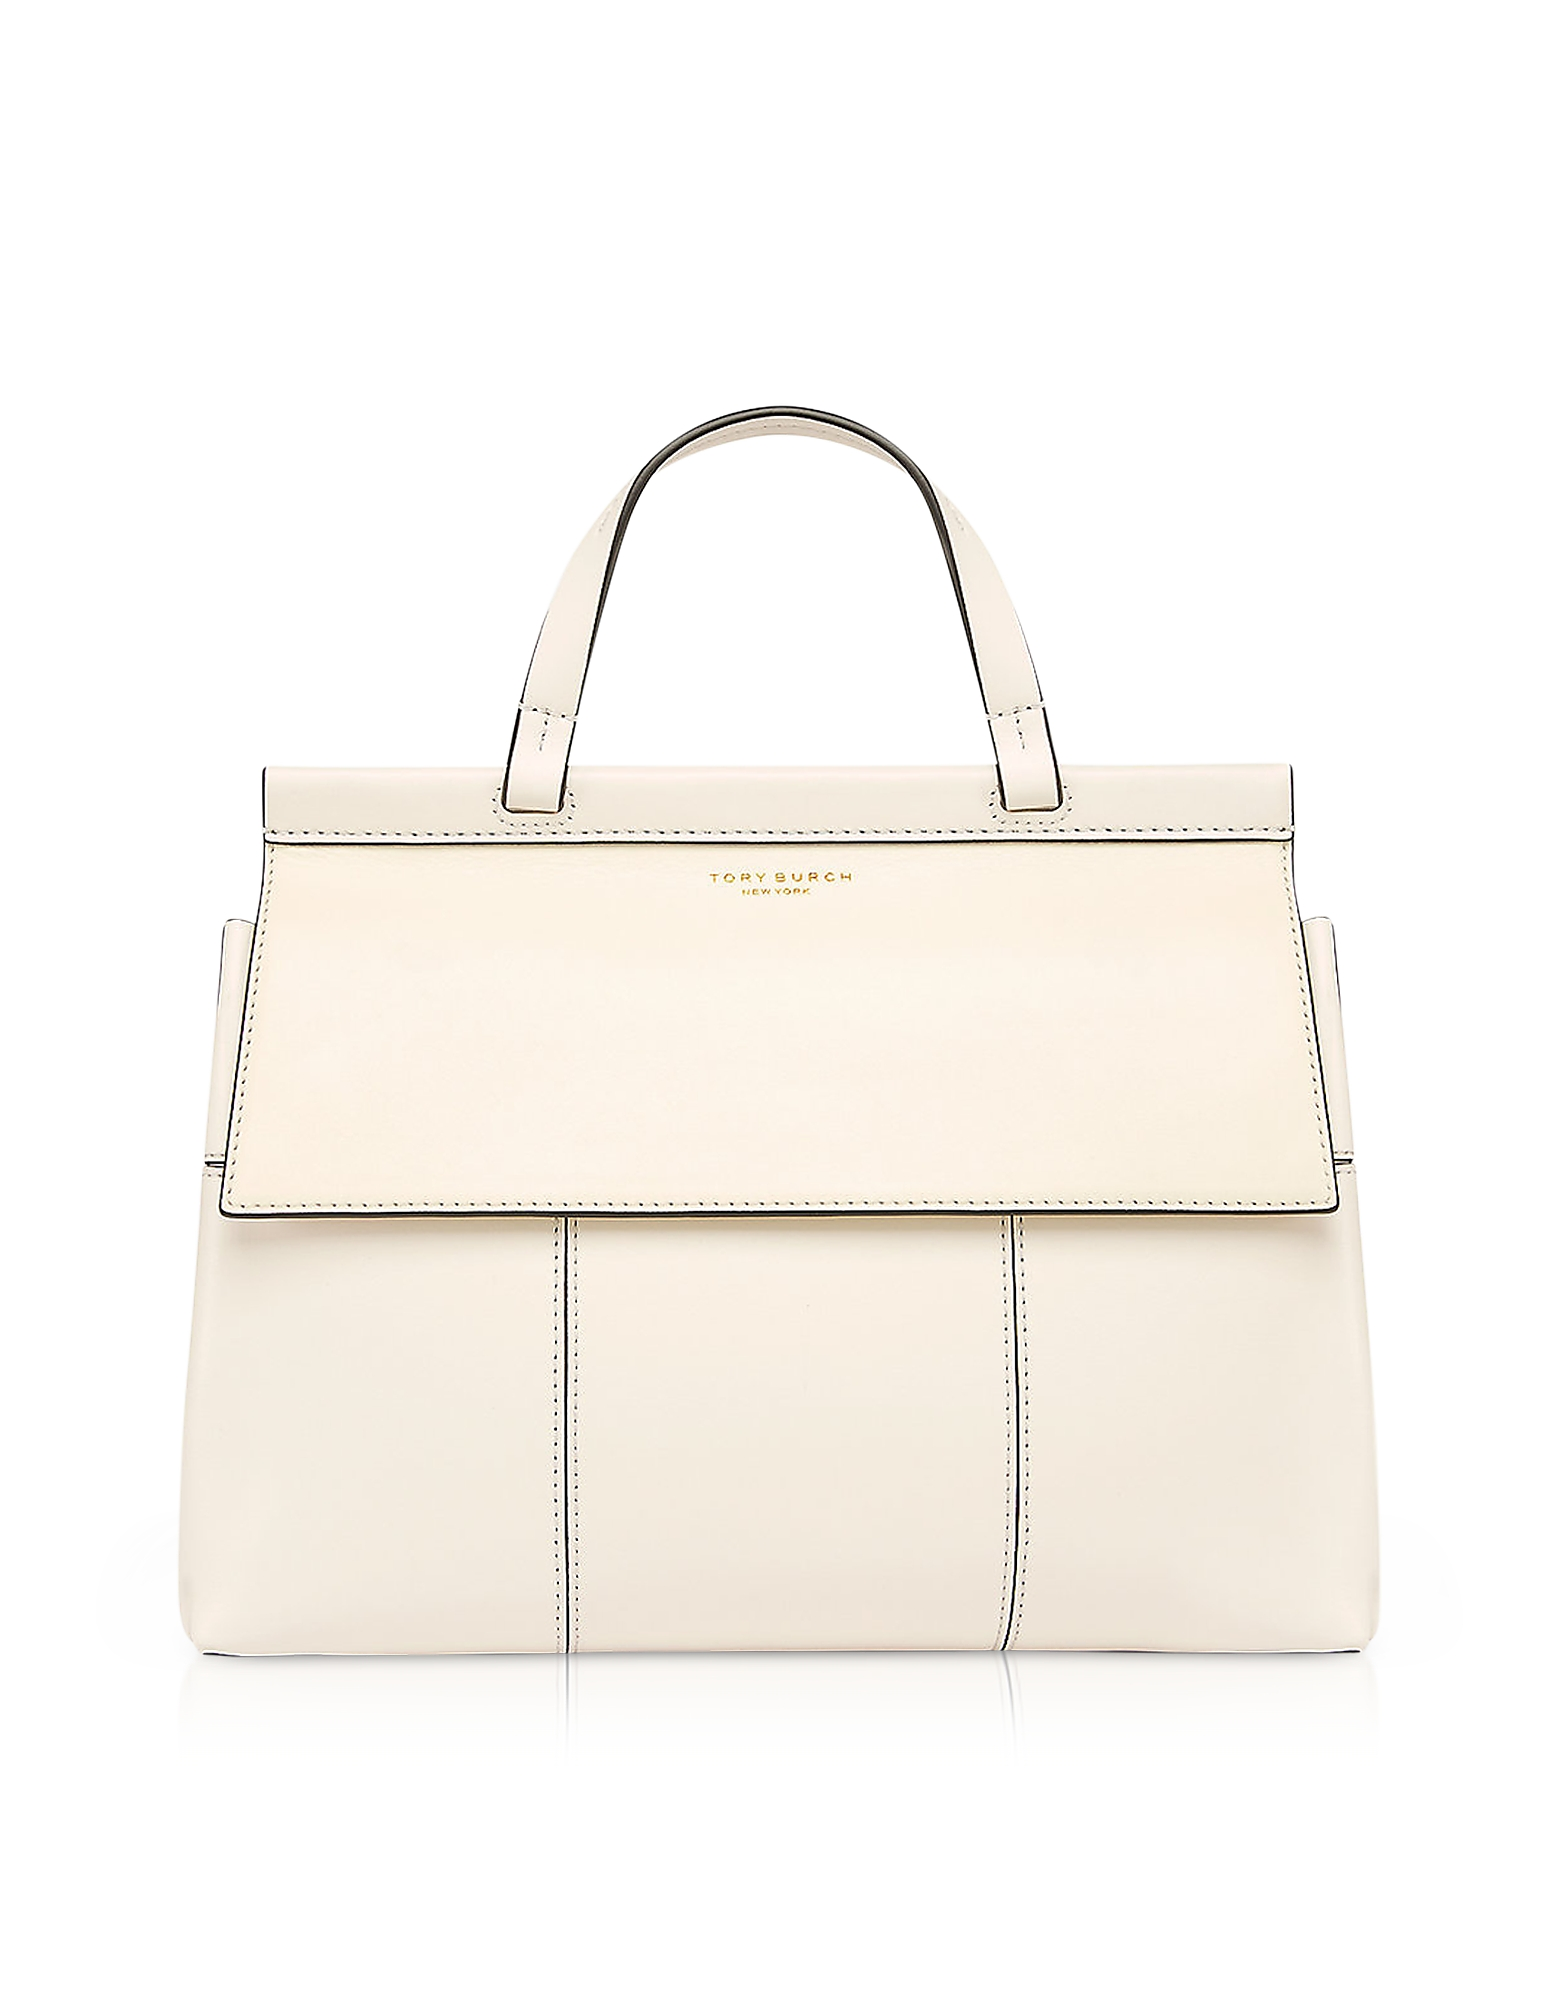 dda87d30b0fe Tory Burch – Block-T New Ivory and Royal Navy Leather Top Handle Satchel Bag